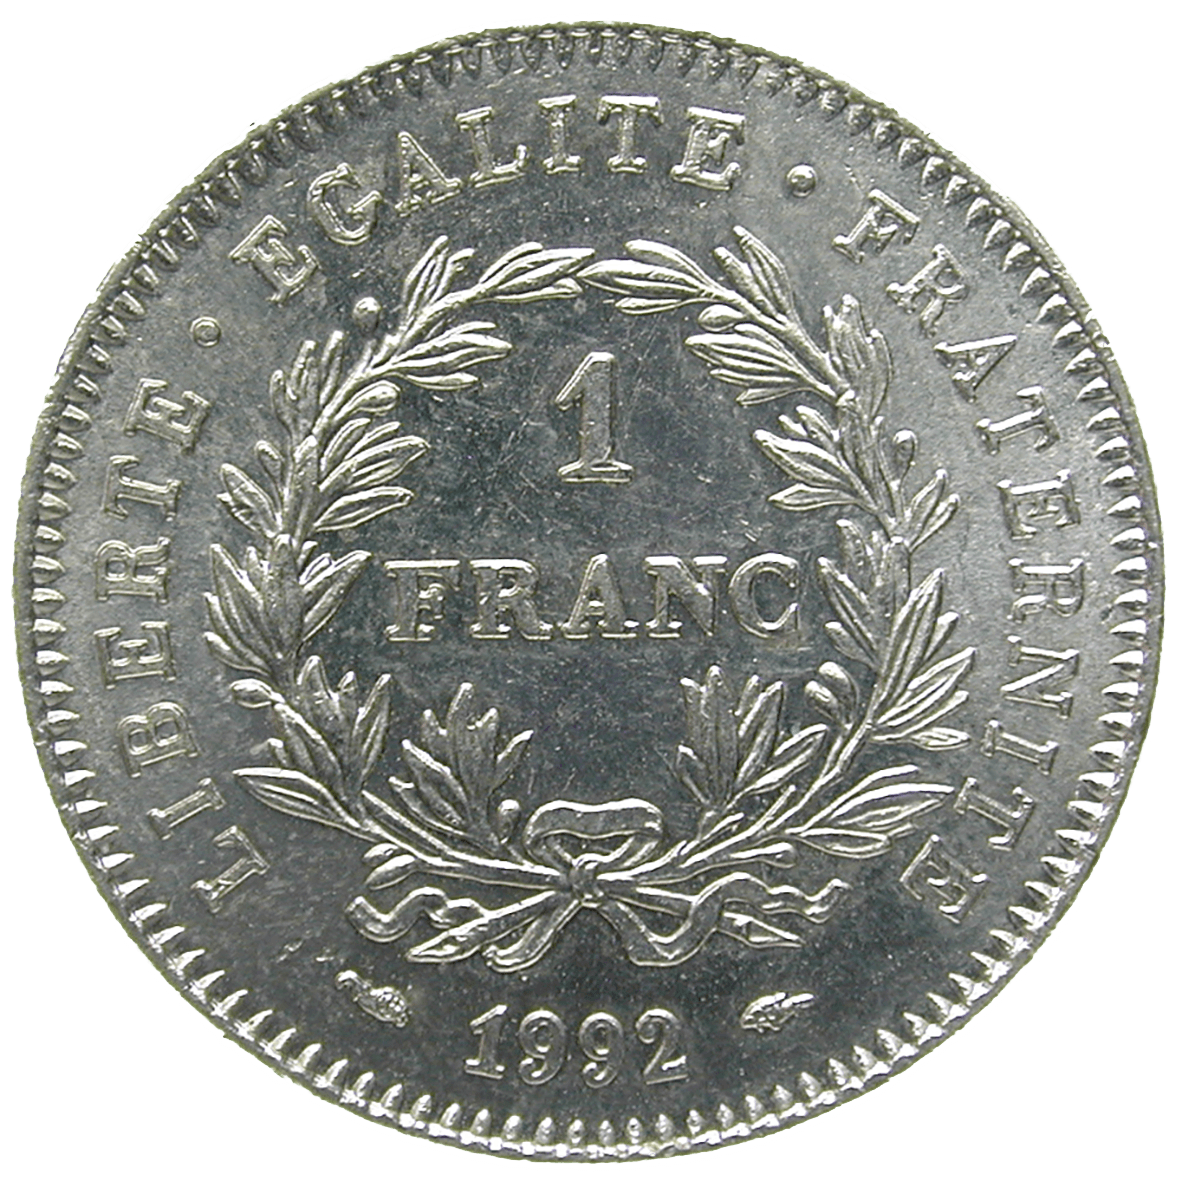 Republic of France, 1 Franc 1992 (reverse)